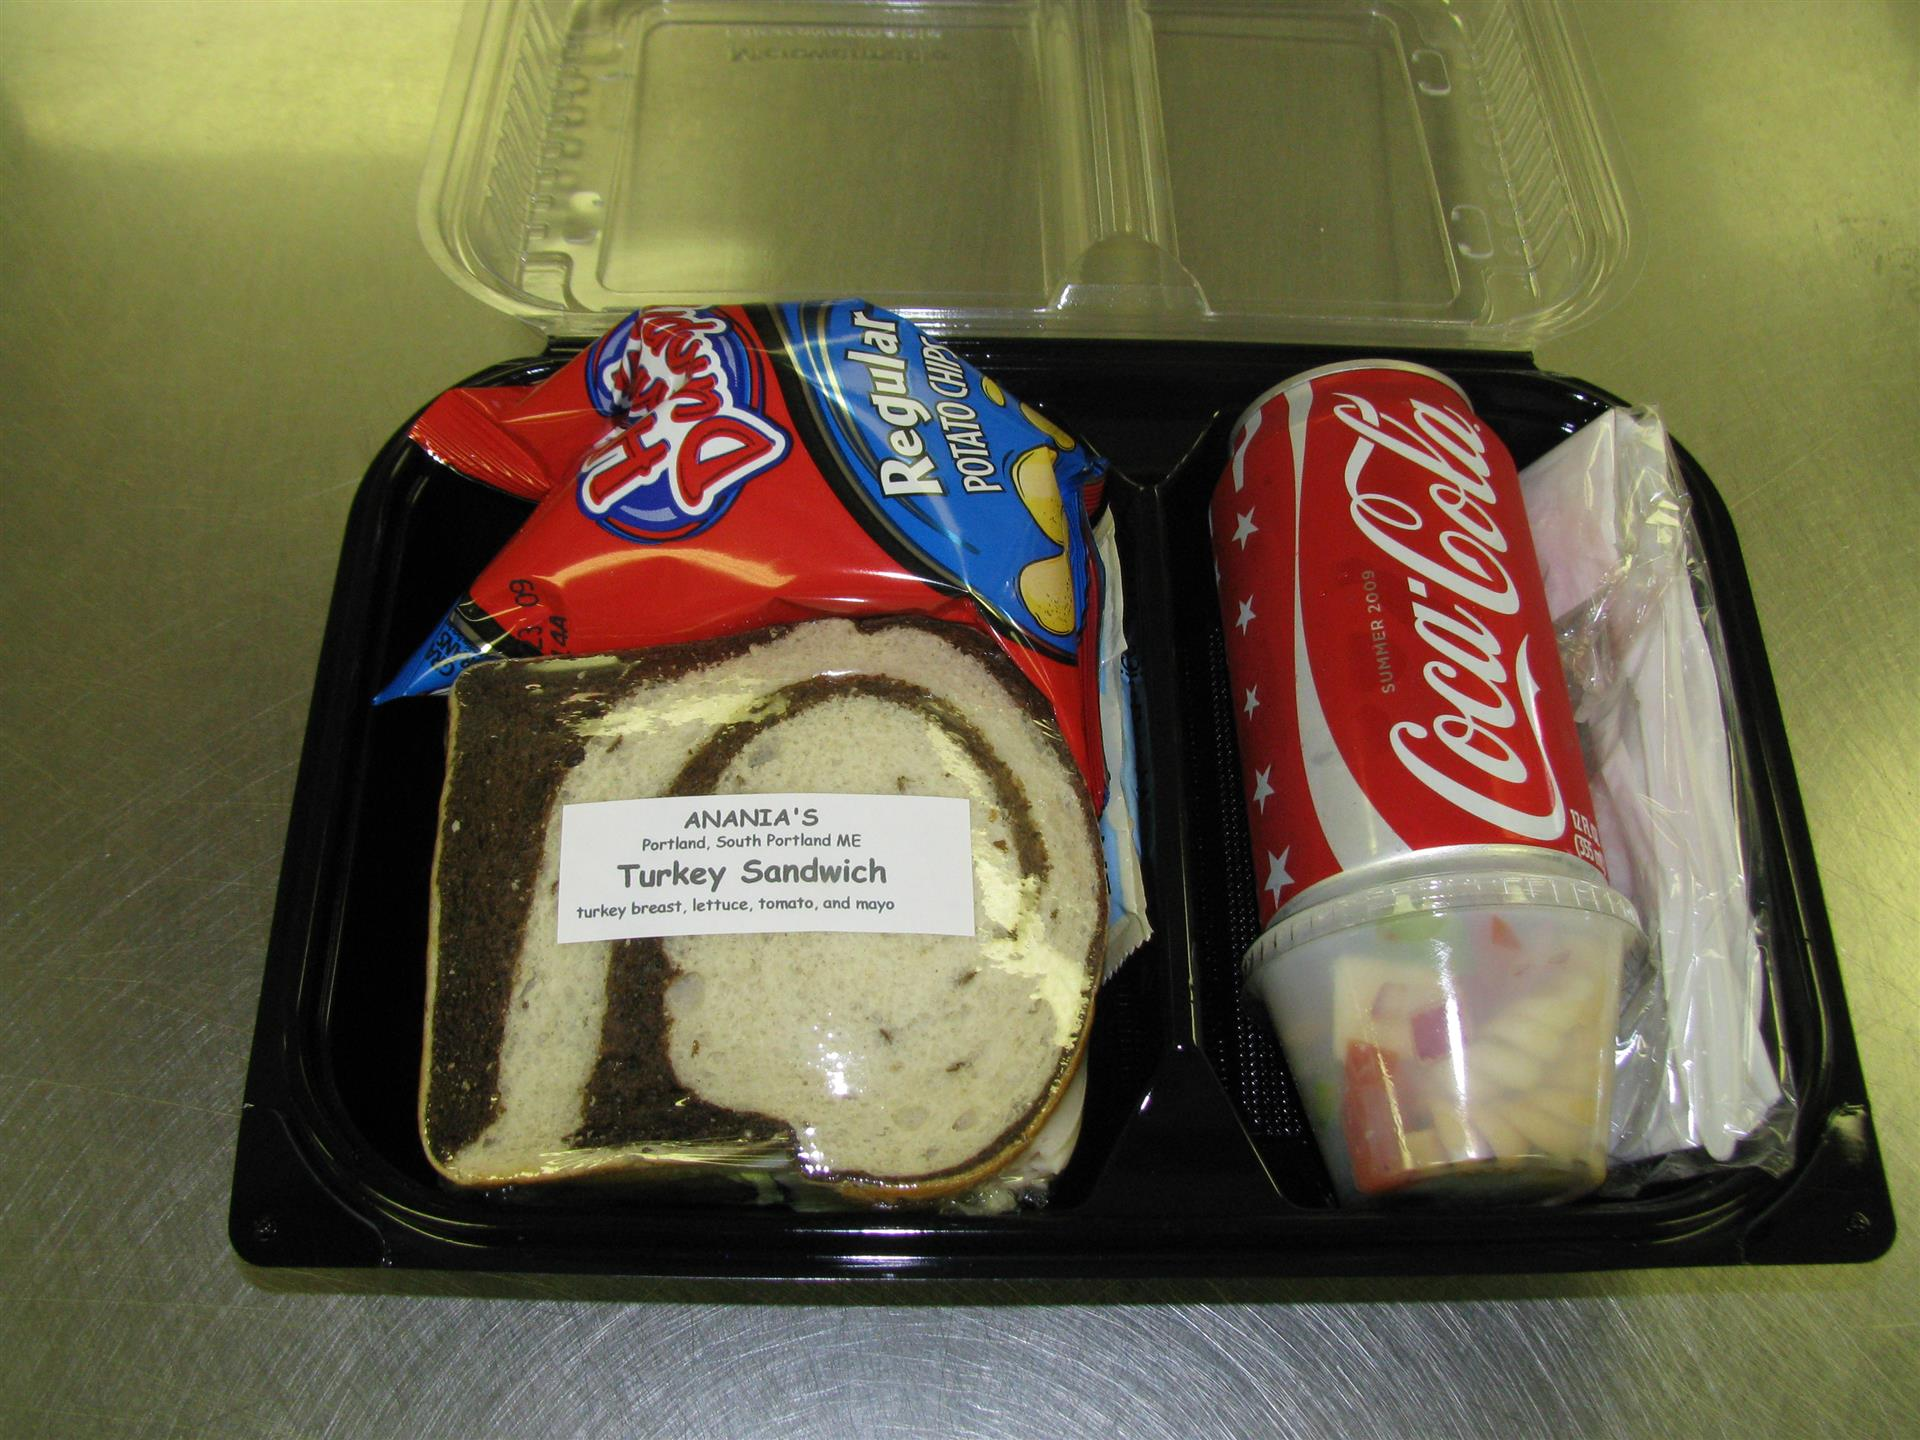 Lunch container with a turkey sandwich, bag of chips, a can of Coca Cola and a small cup of pasta salad